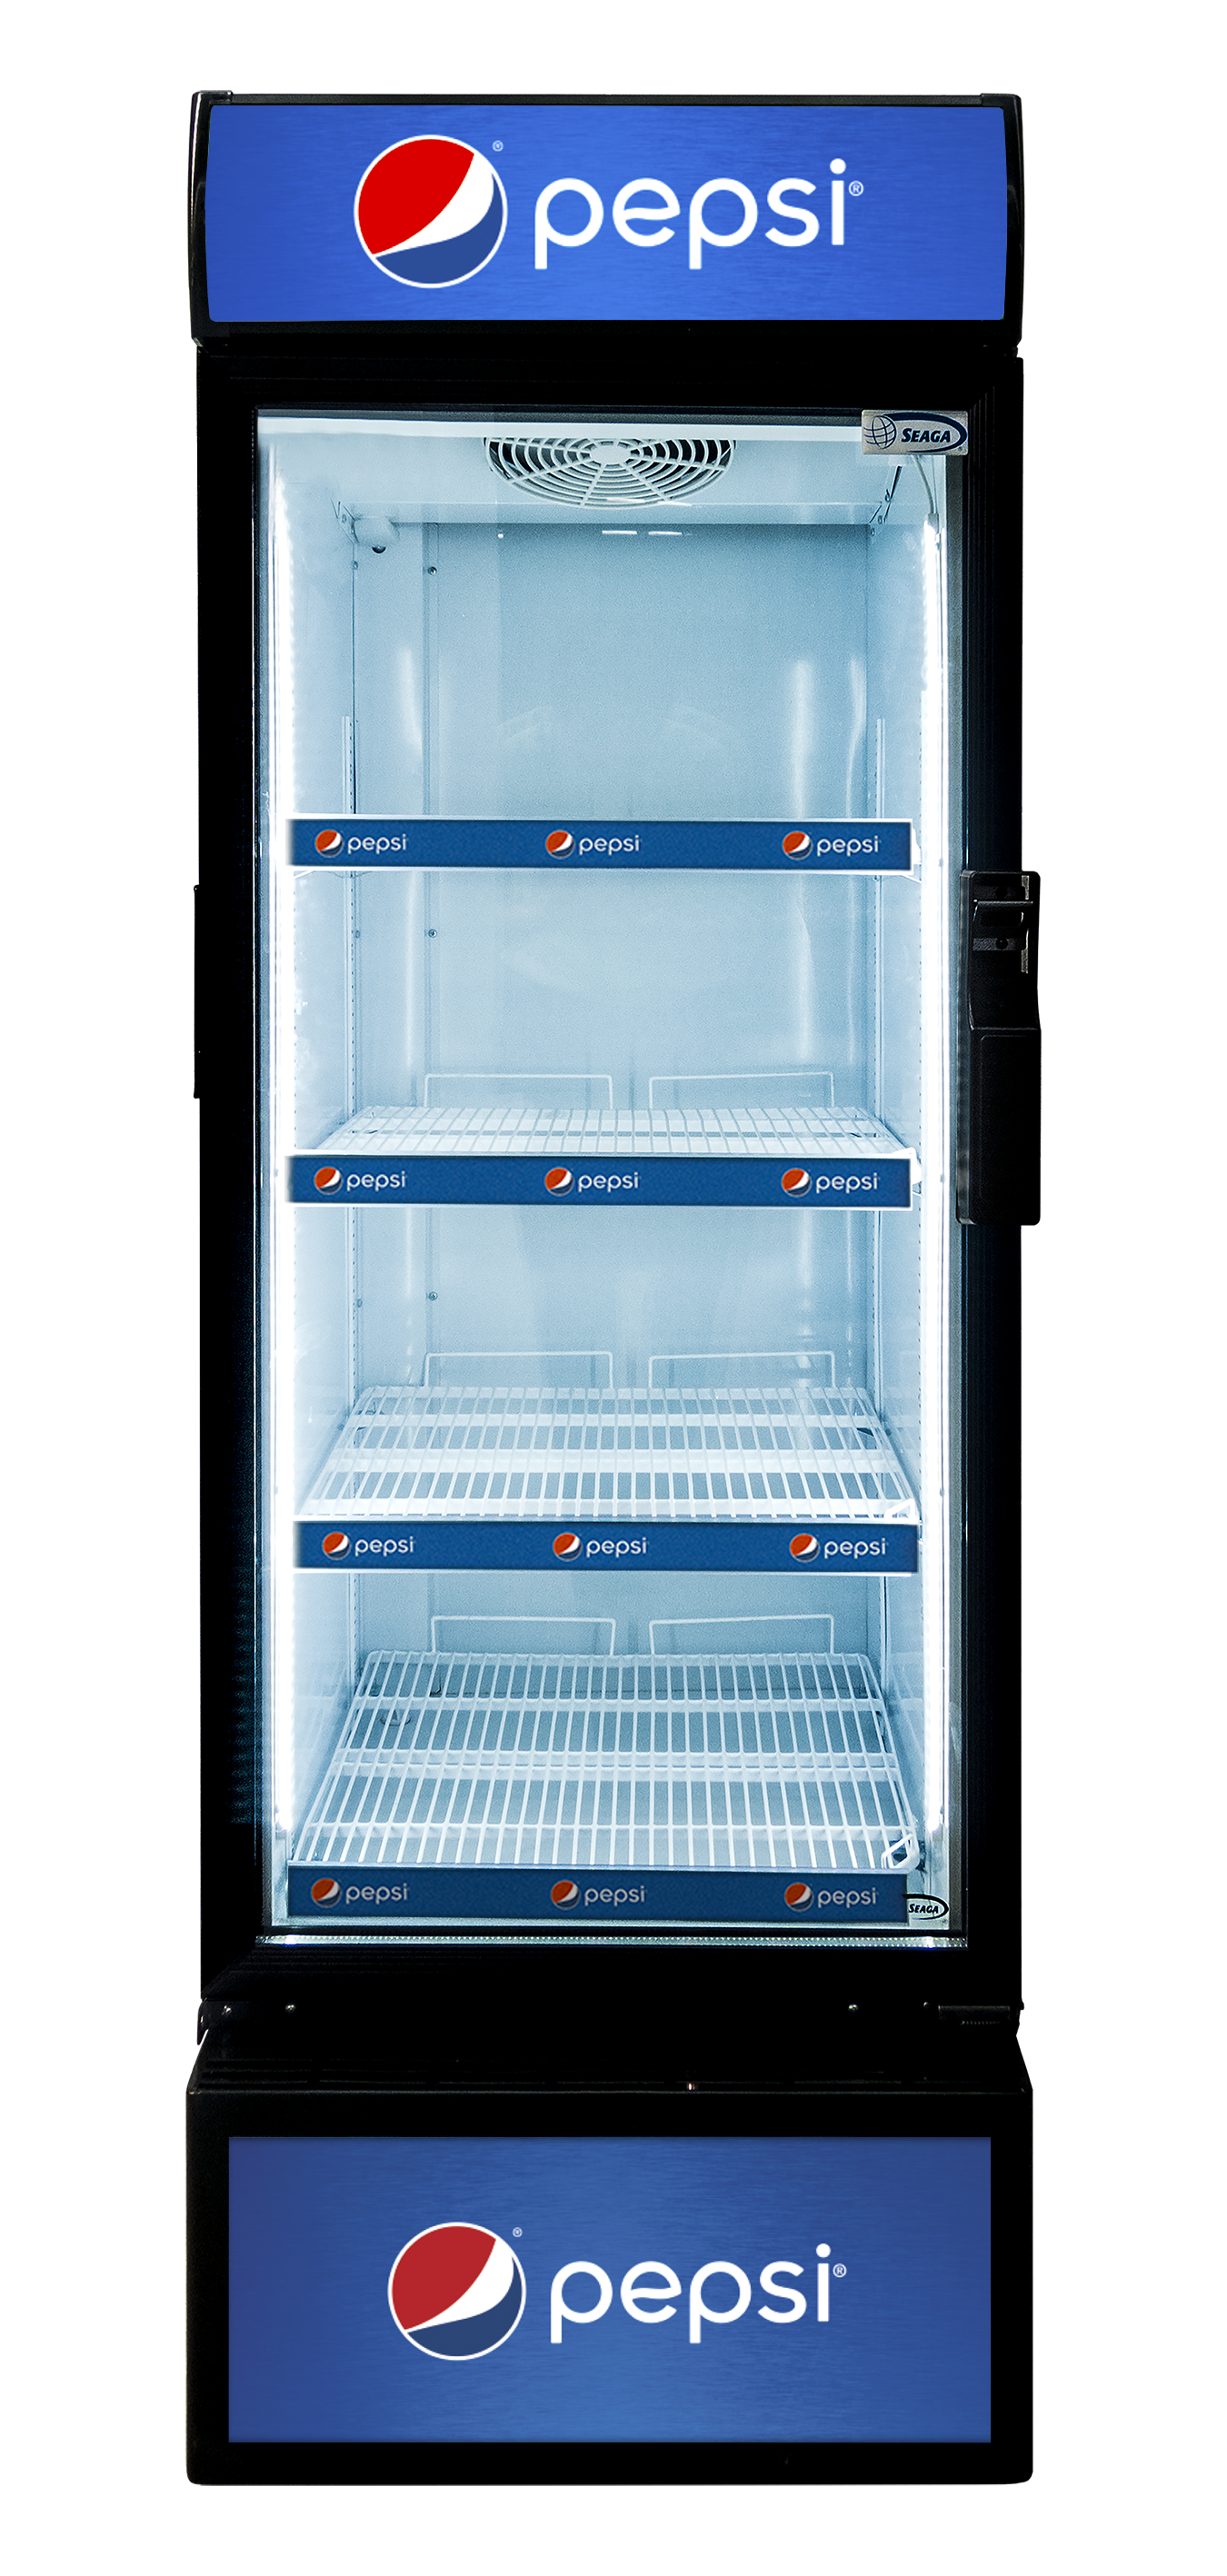 The S400 Visi-Cooler by Seaga offers proven innovative technology to ensure the best refrigeration and high visibility presentation of your items